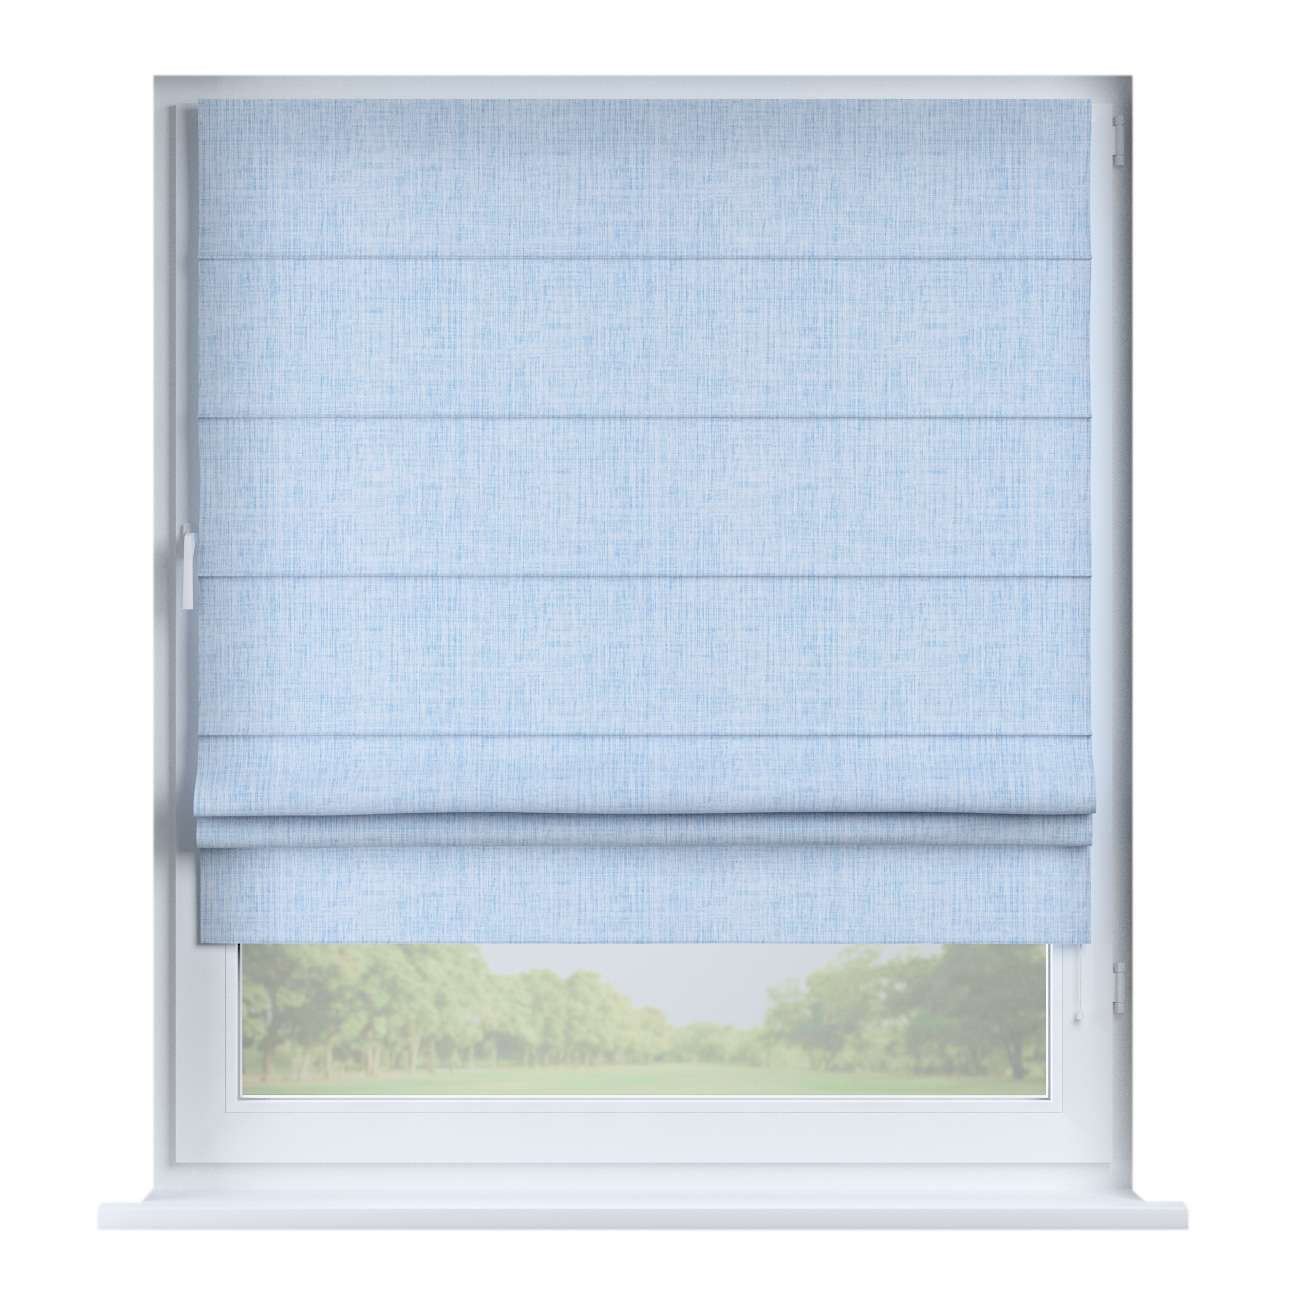 Padva roman blind  80 × 170 cm (31.5 × 67 inch) in collection Aquarelle, fabric: 140-74